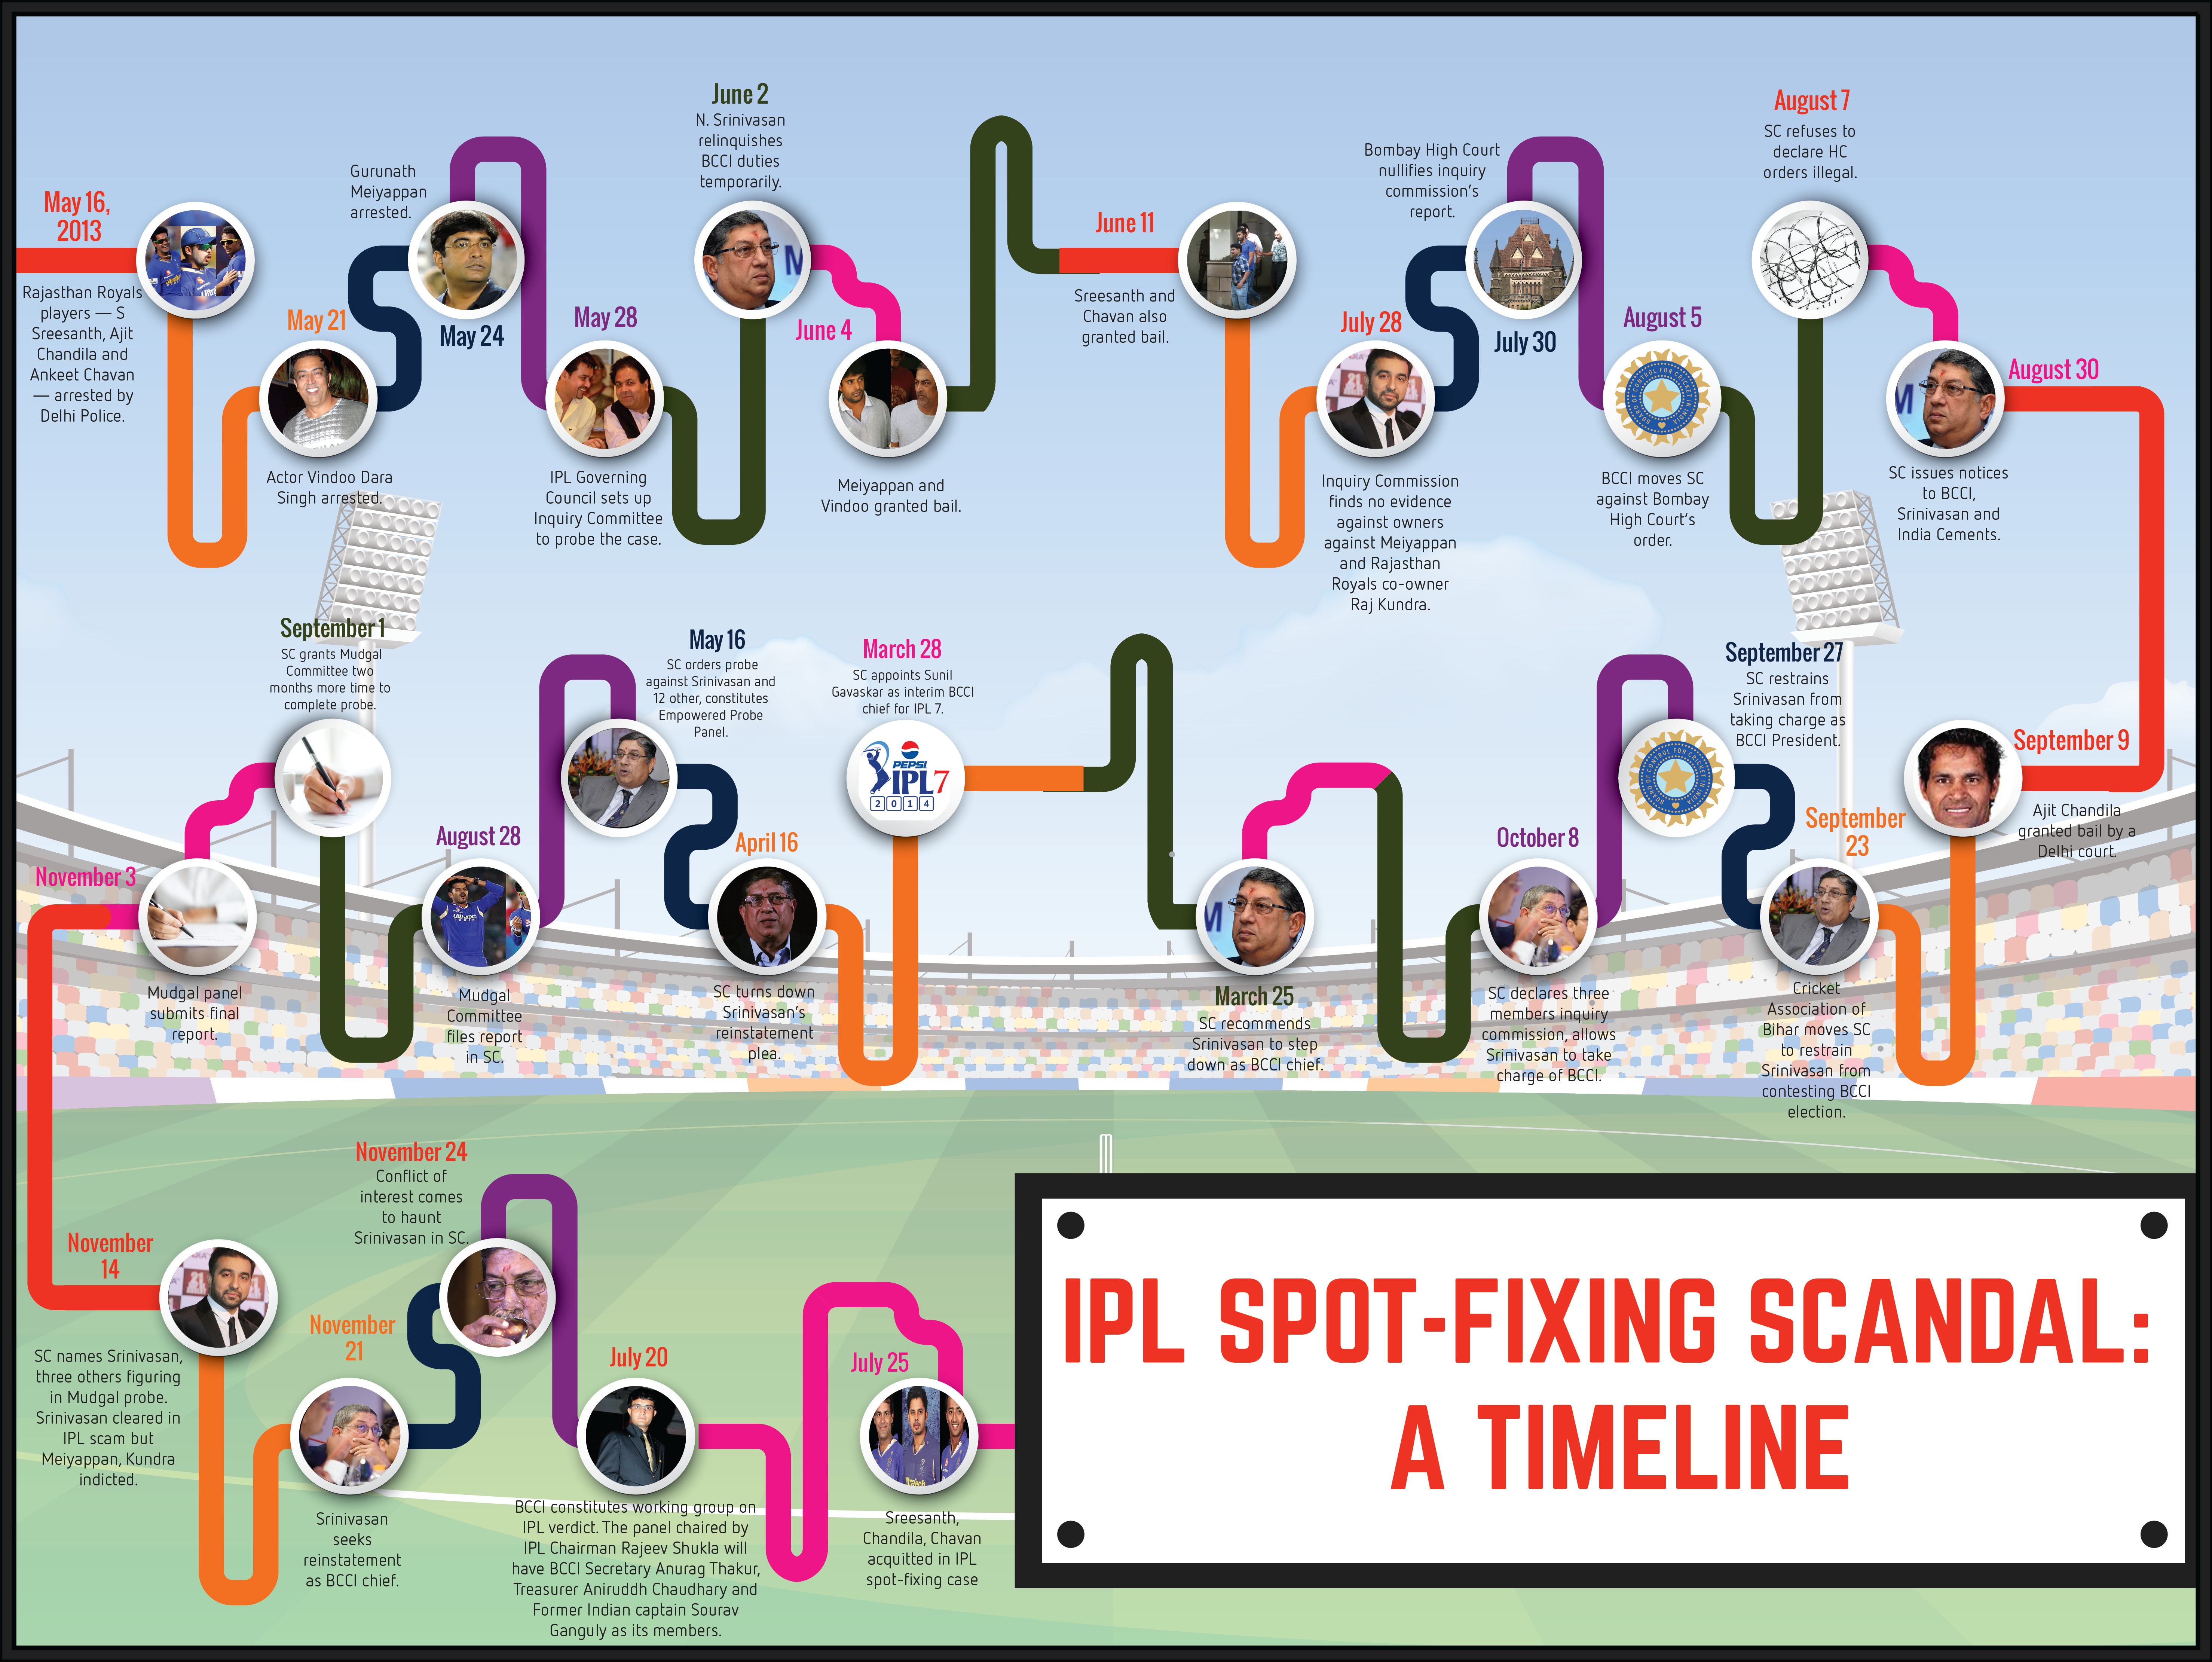 ipl spot fixing The indian premier league (ipl) 2013 betting and spot-fixing controversy first came to light on may 16, 2013 nishad pai vaidya looks back at the eventful year that has rocked indian cricket the date may 16, 2013 won't be forgotten by indian cricket for years to come if the match-fixing scandal.